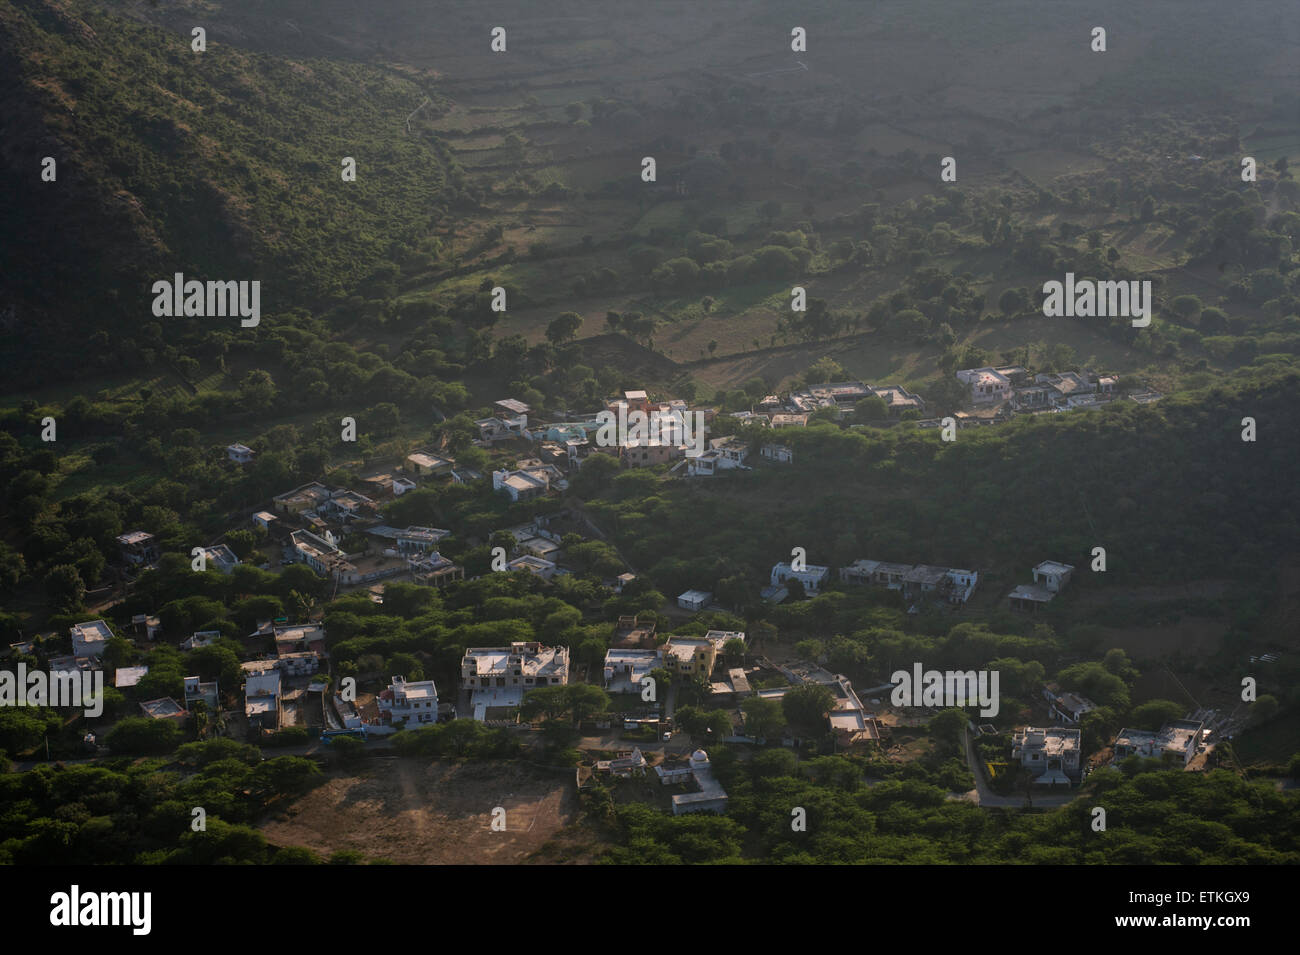 View of the hills around Udaipur from the Monsoon Palace above the city. Rajasthan, India - Stock Image